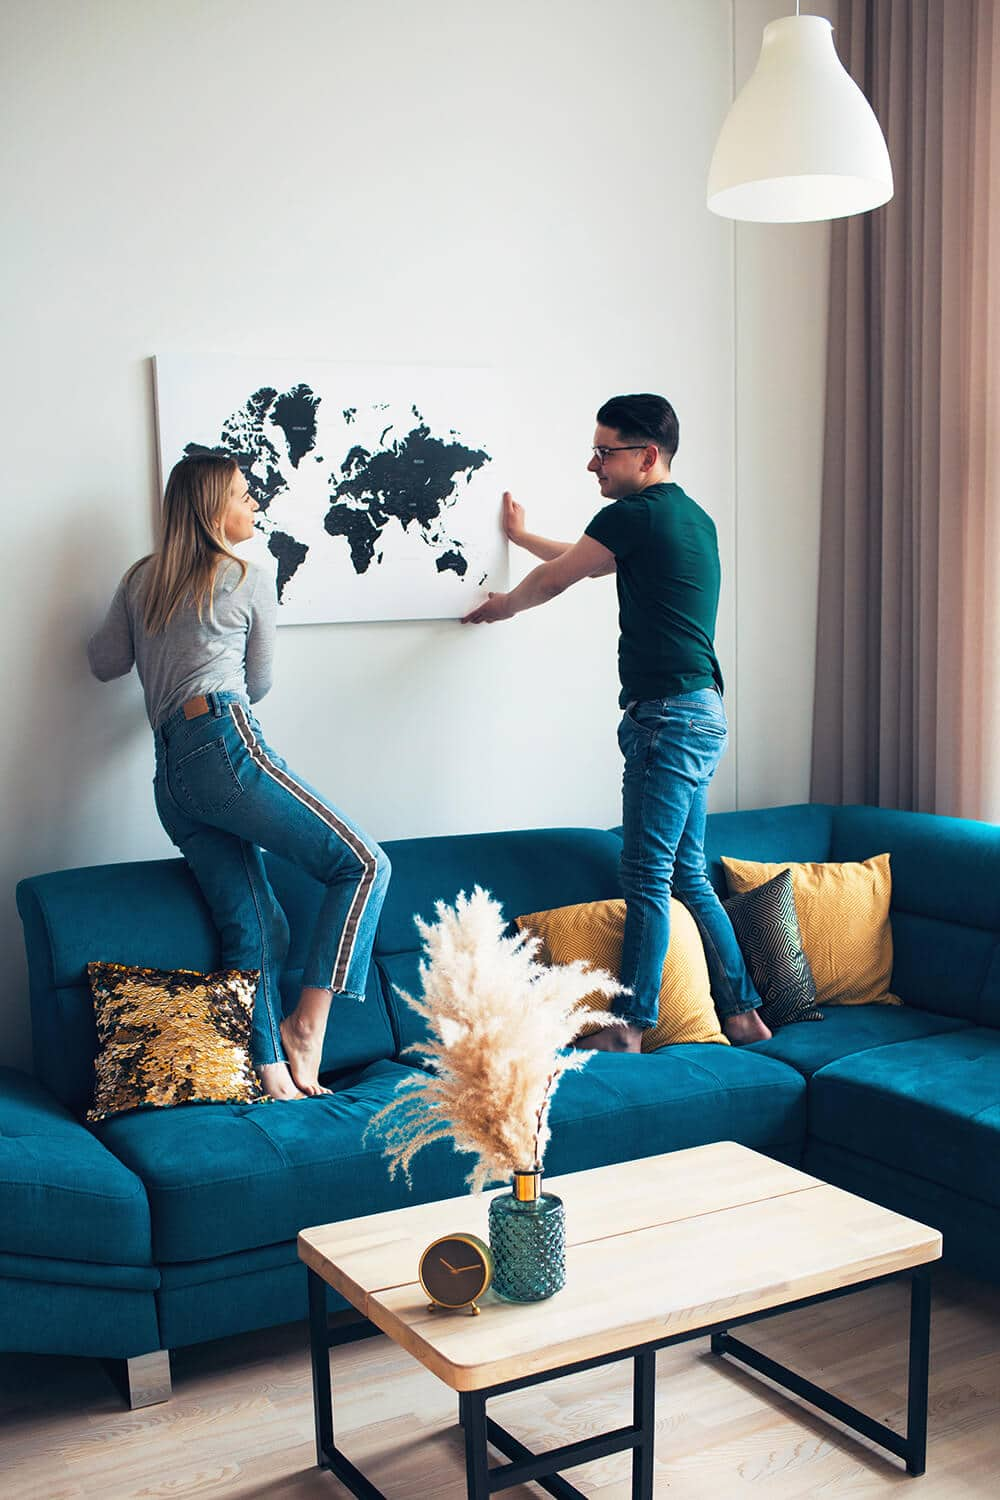 hanging on a wall travel map with pins